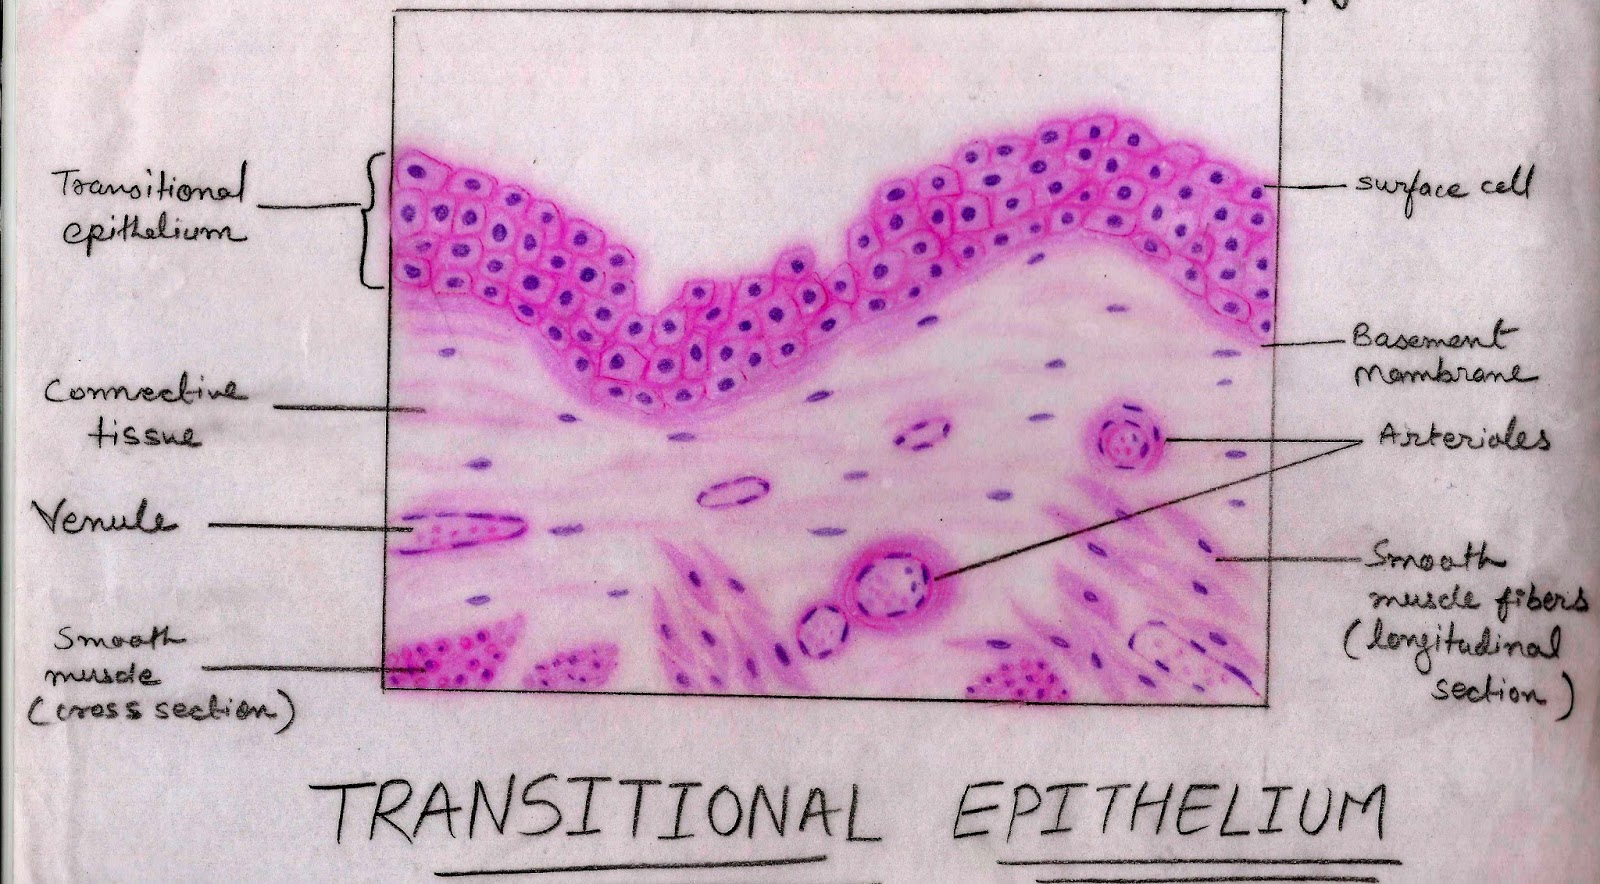 Histology Image: Membranous epithelium